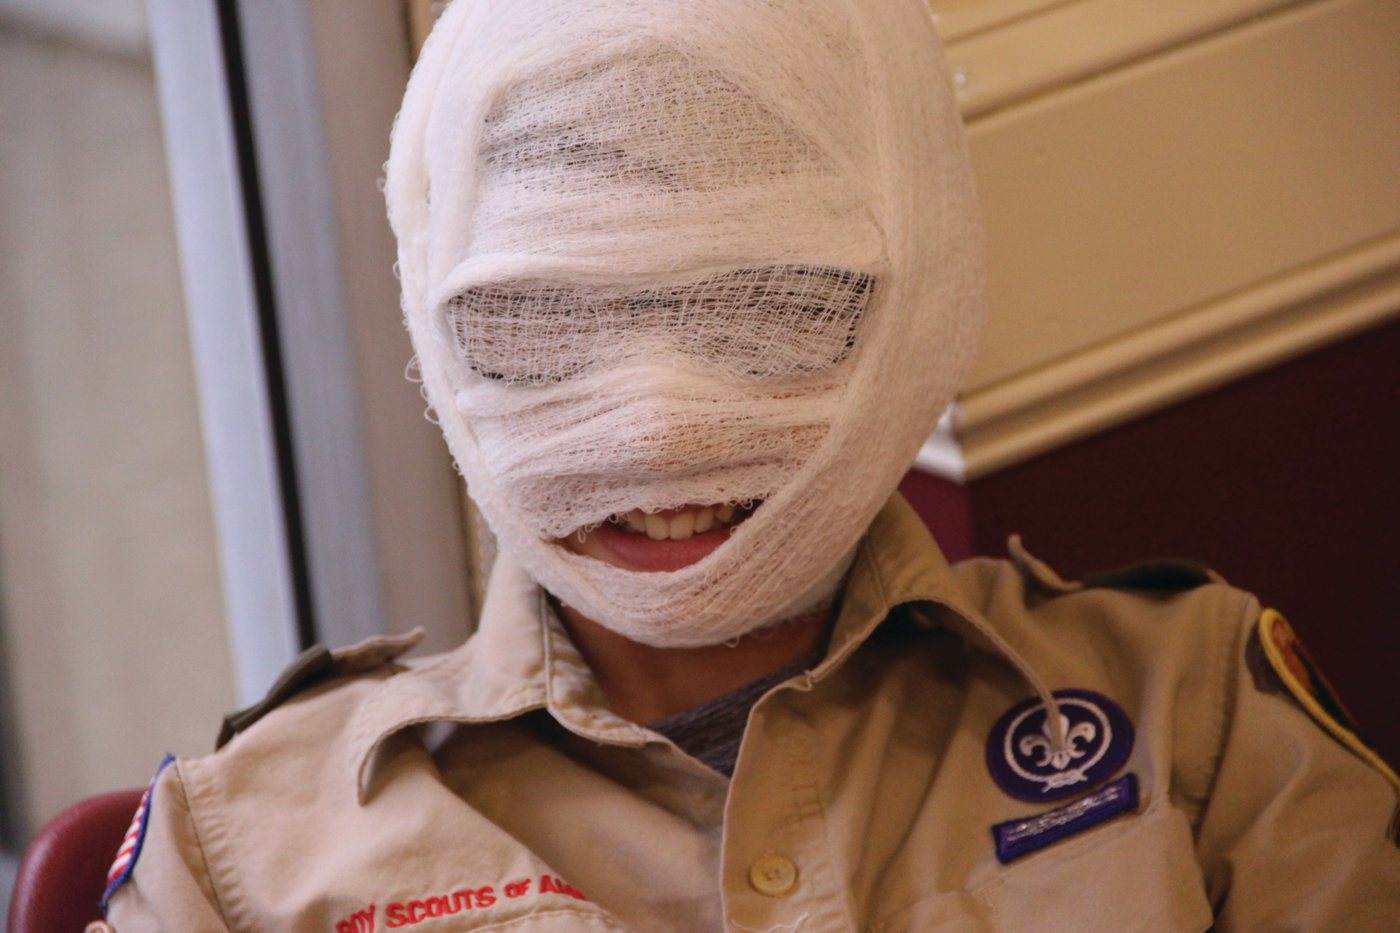 WRAPPED UP: One of the scouts in the first aid class (we couldn't identify him) couldn't resist using gauze for a cause